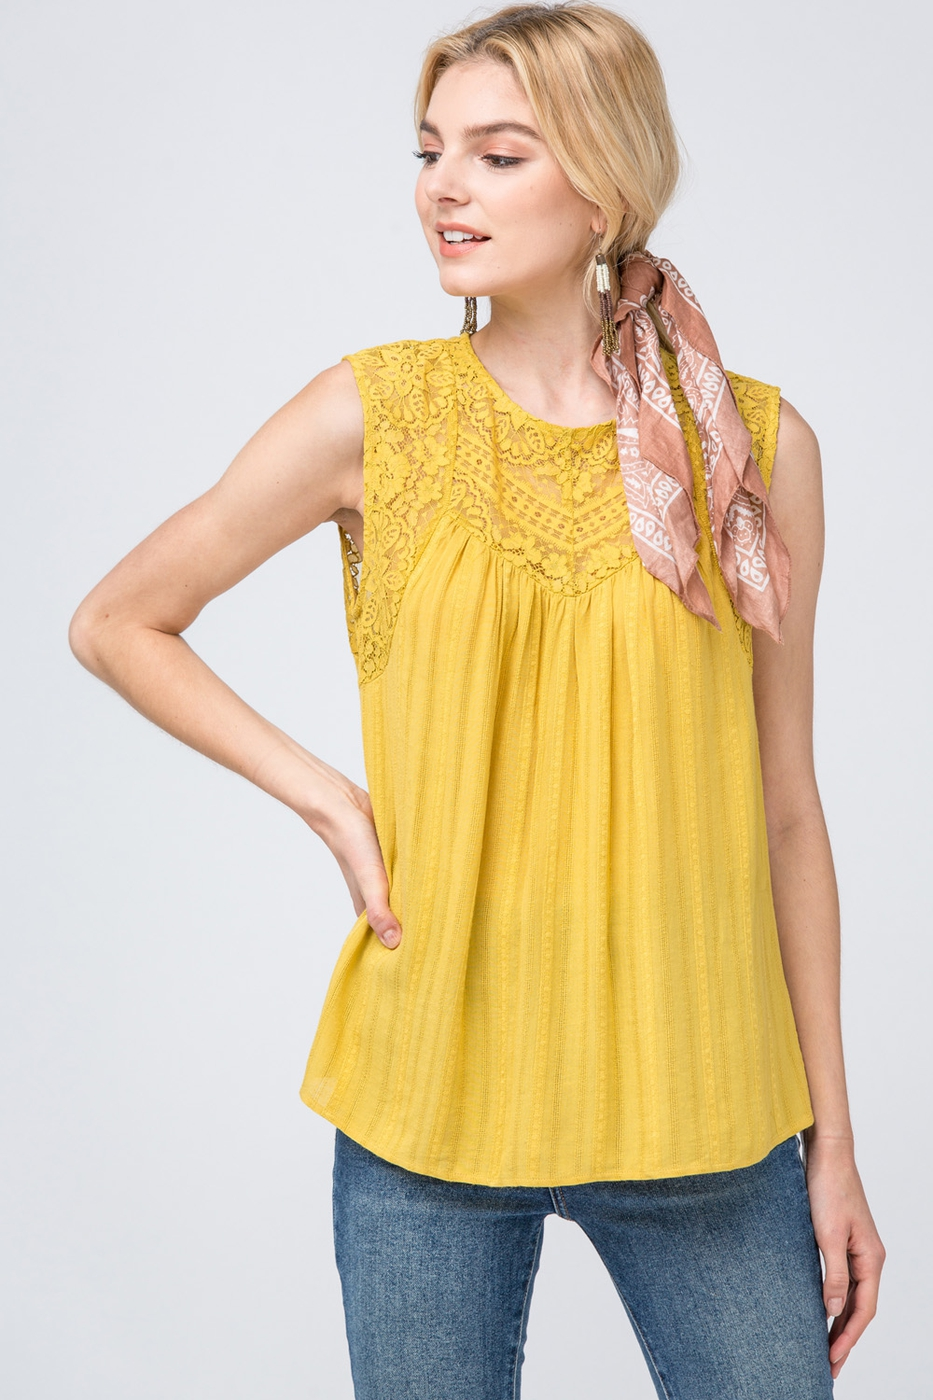 Textured sleeveless top - orangeshine.com